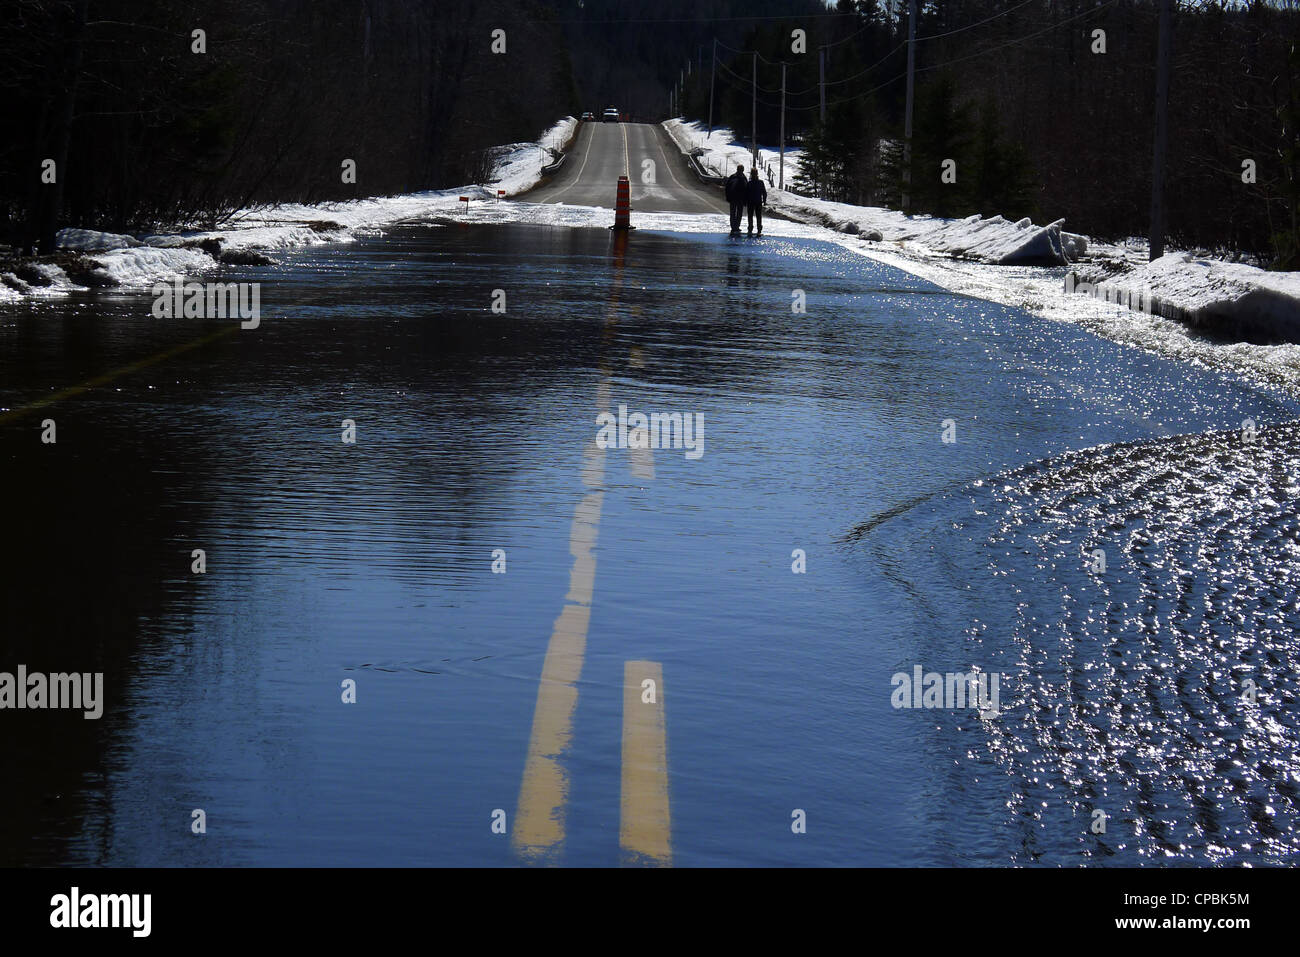 A couple looking at a road blocked by floodwater - Stock Image